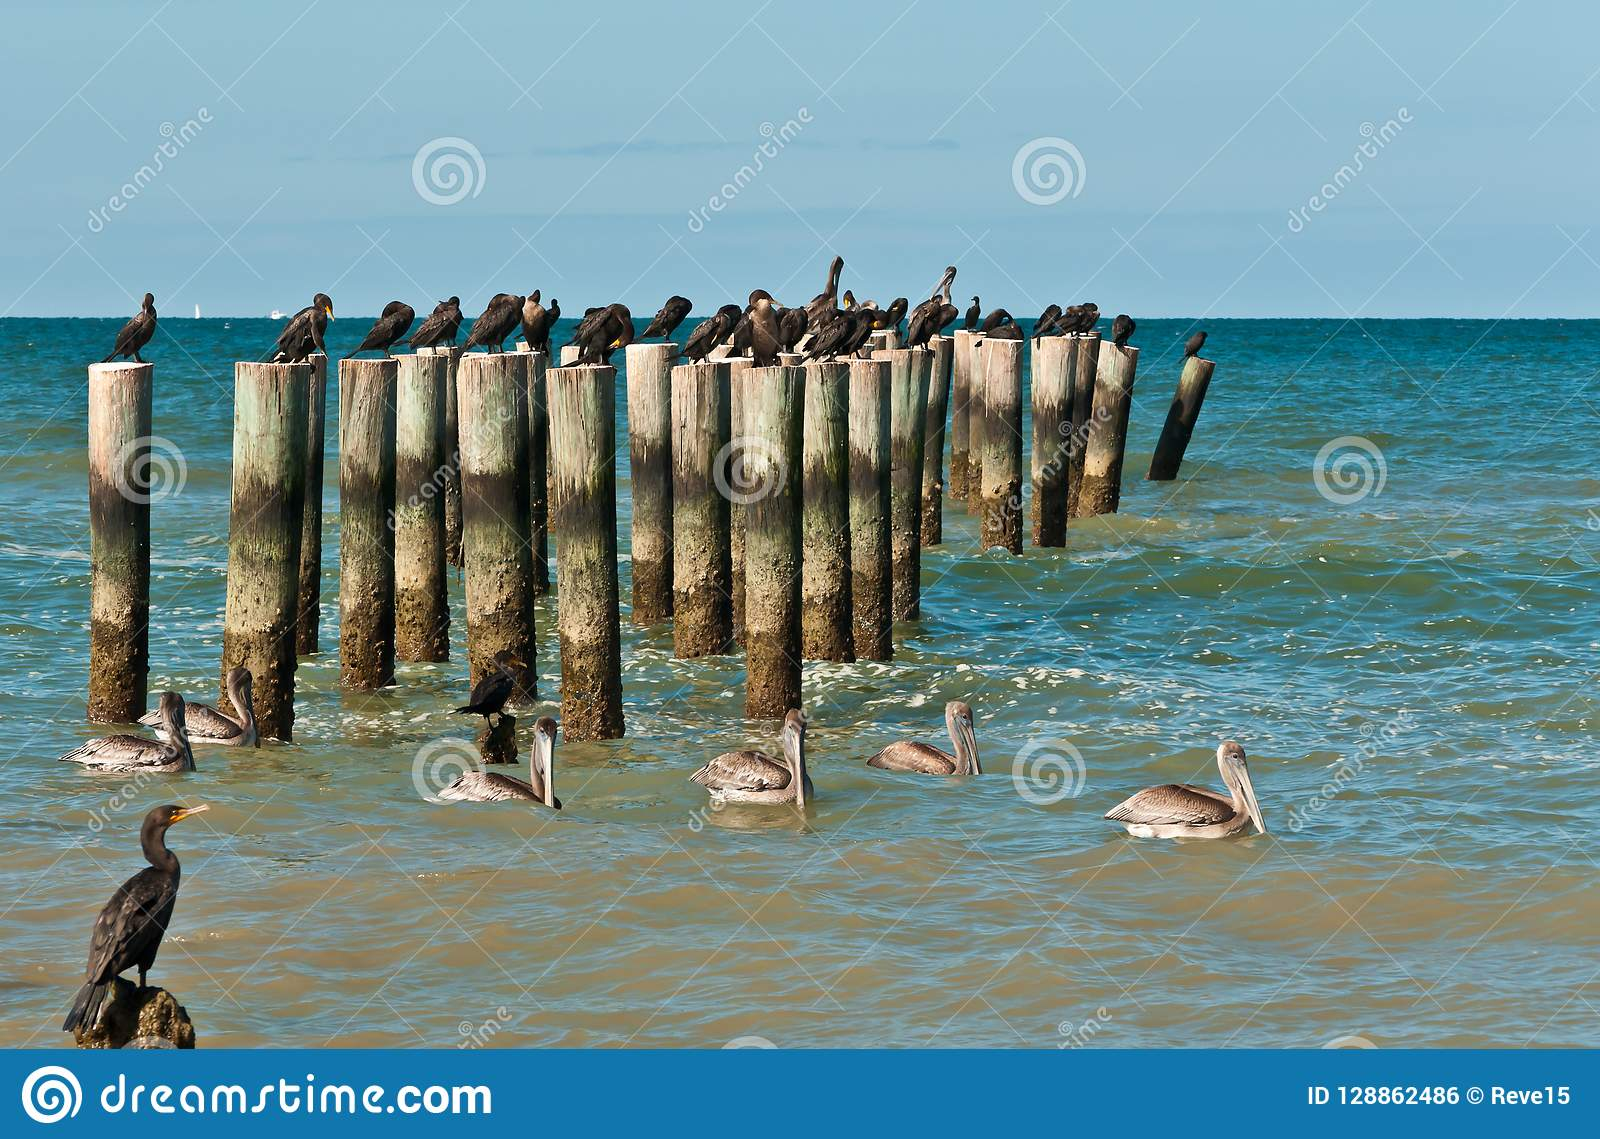 swimming brown pelicans and resting double-crested cormorants on wood pilings